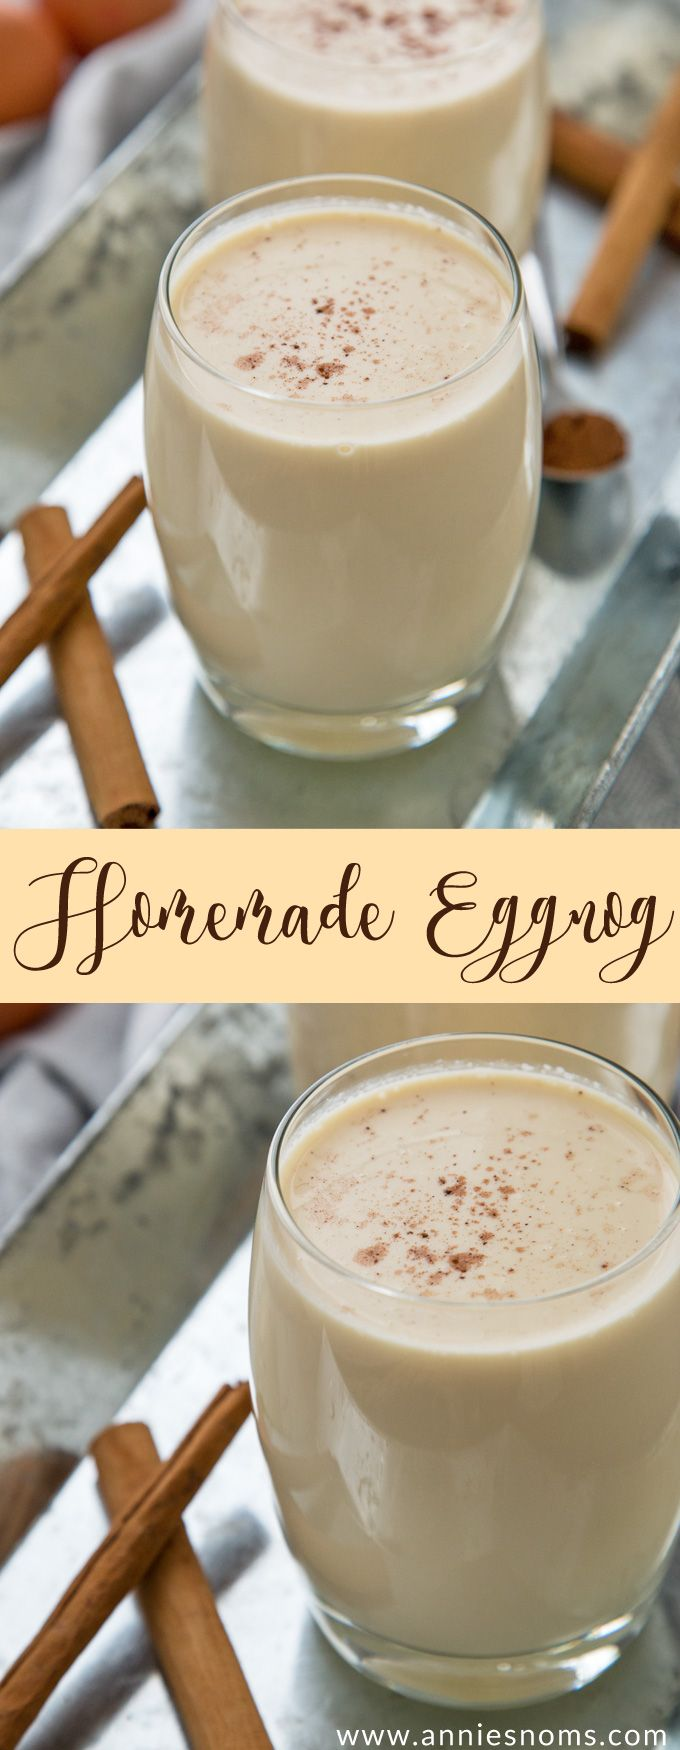 My homemade eggnog is thick, sweet and creamy and completely alcohol free for those of us who are teetotal this festive period!